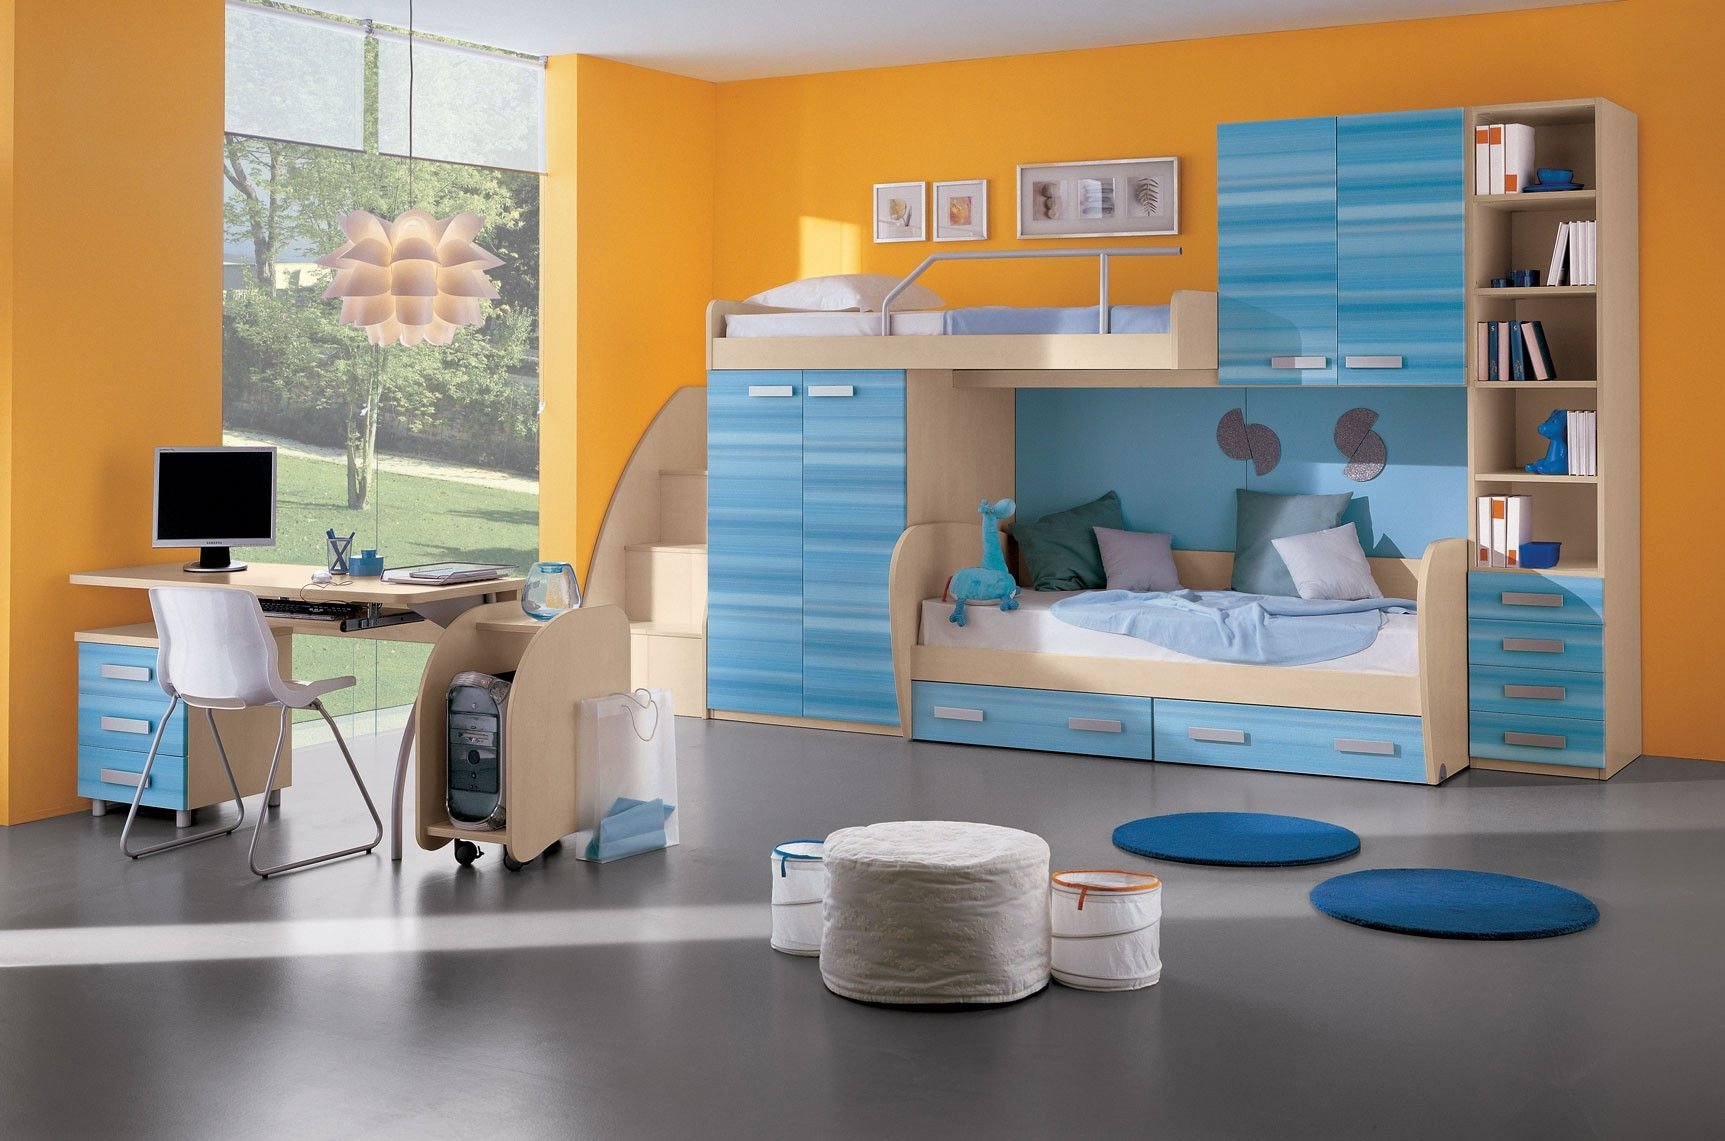 Beauteous Design Kids Room Decorating Ideas Boys Bedroom With White Wood Bunk Bed Along Storage Blue Cabinet An Kids Room Design Kids Room Paint Bedroom Design